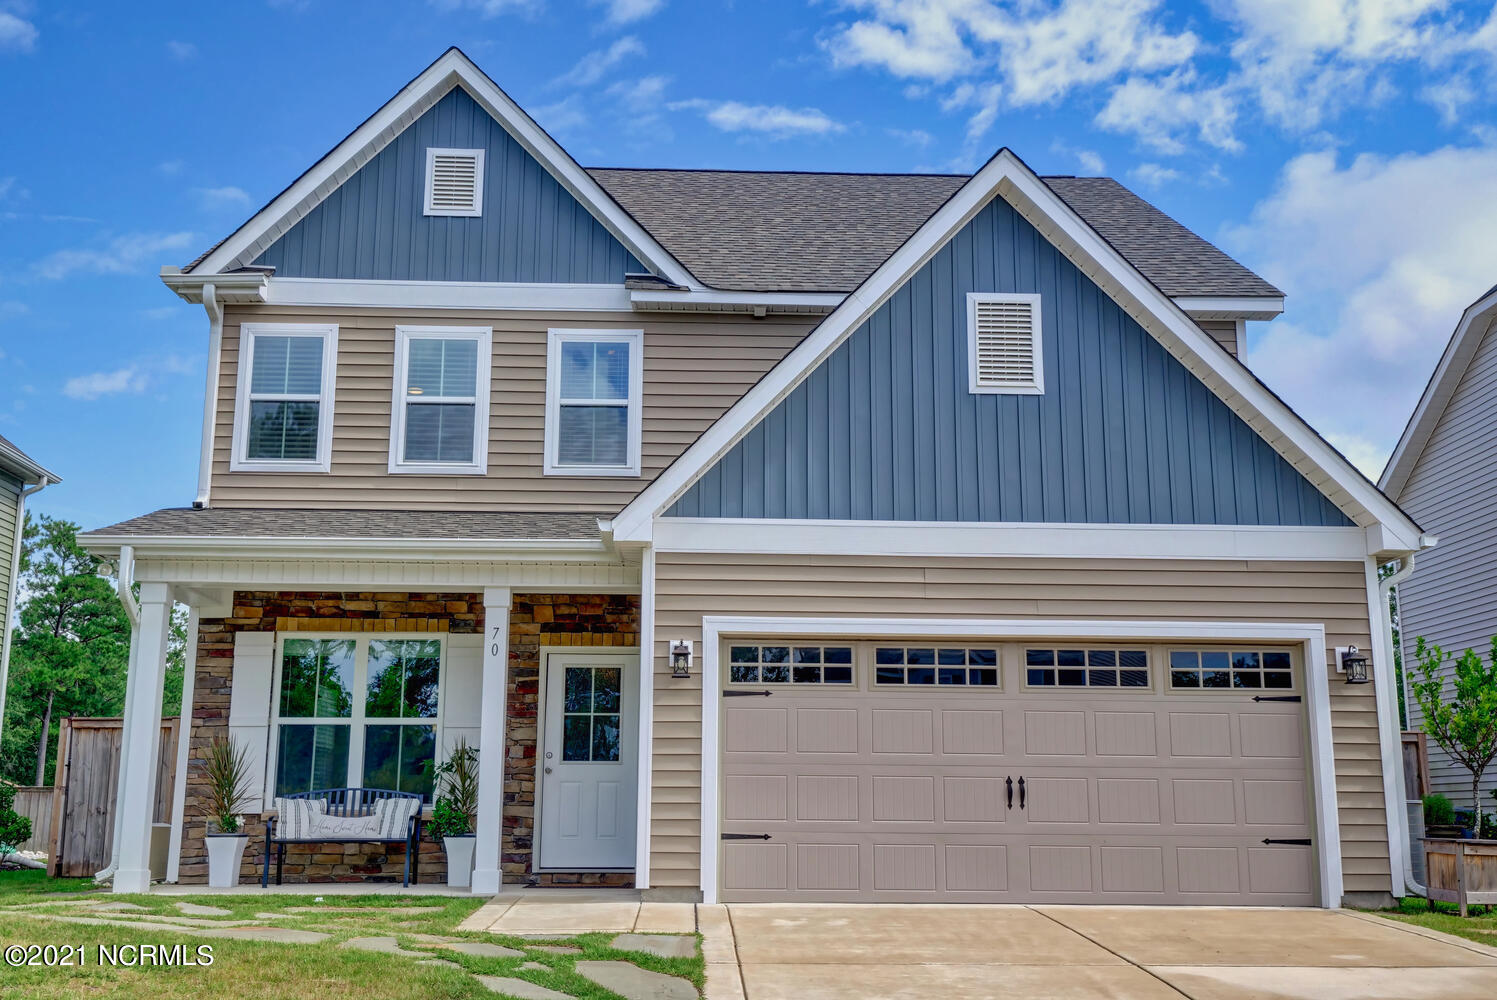 This 4 bedroom, 2.5 bath home is located on a cul-de-sac in the popular community of Wyndwater. The interior features an open floor plan with a gas log fireplace (never used) in the living room, a formal dining room with a coffered ceiling, and a spacious kitchen with a center island, tile backsplash, granite countertops, and stainless steel appliances. The second-floor master suite has a garden tub, separate shower, and walk-in closet. At the rear of the home is an Easy Breeze screened porch and large patio overlooking a fenced back yard. The home has gutters front and back, fence gates on two sides, and a gladiator wall storage unit in the garage. Wyndwater is a master-planned community with a neighborhood pool, clubhouse, and sidewalks leading past ponds, gazebos, and green spaces